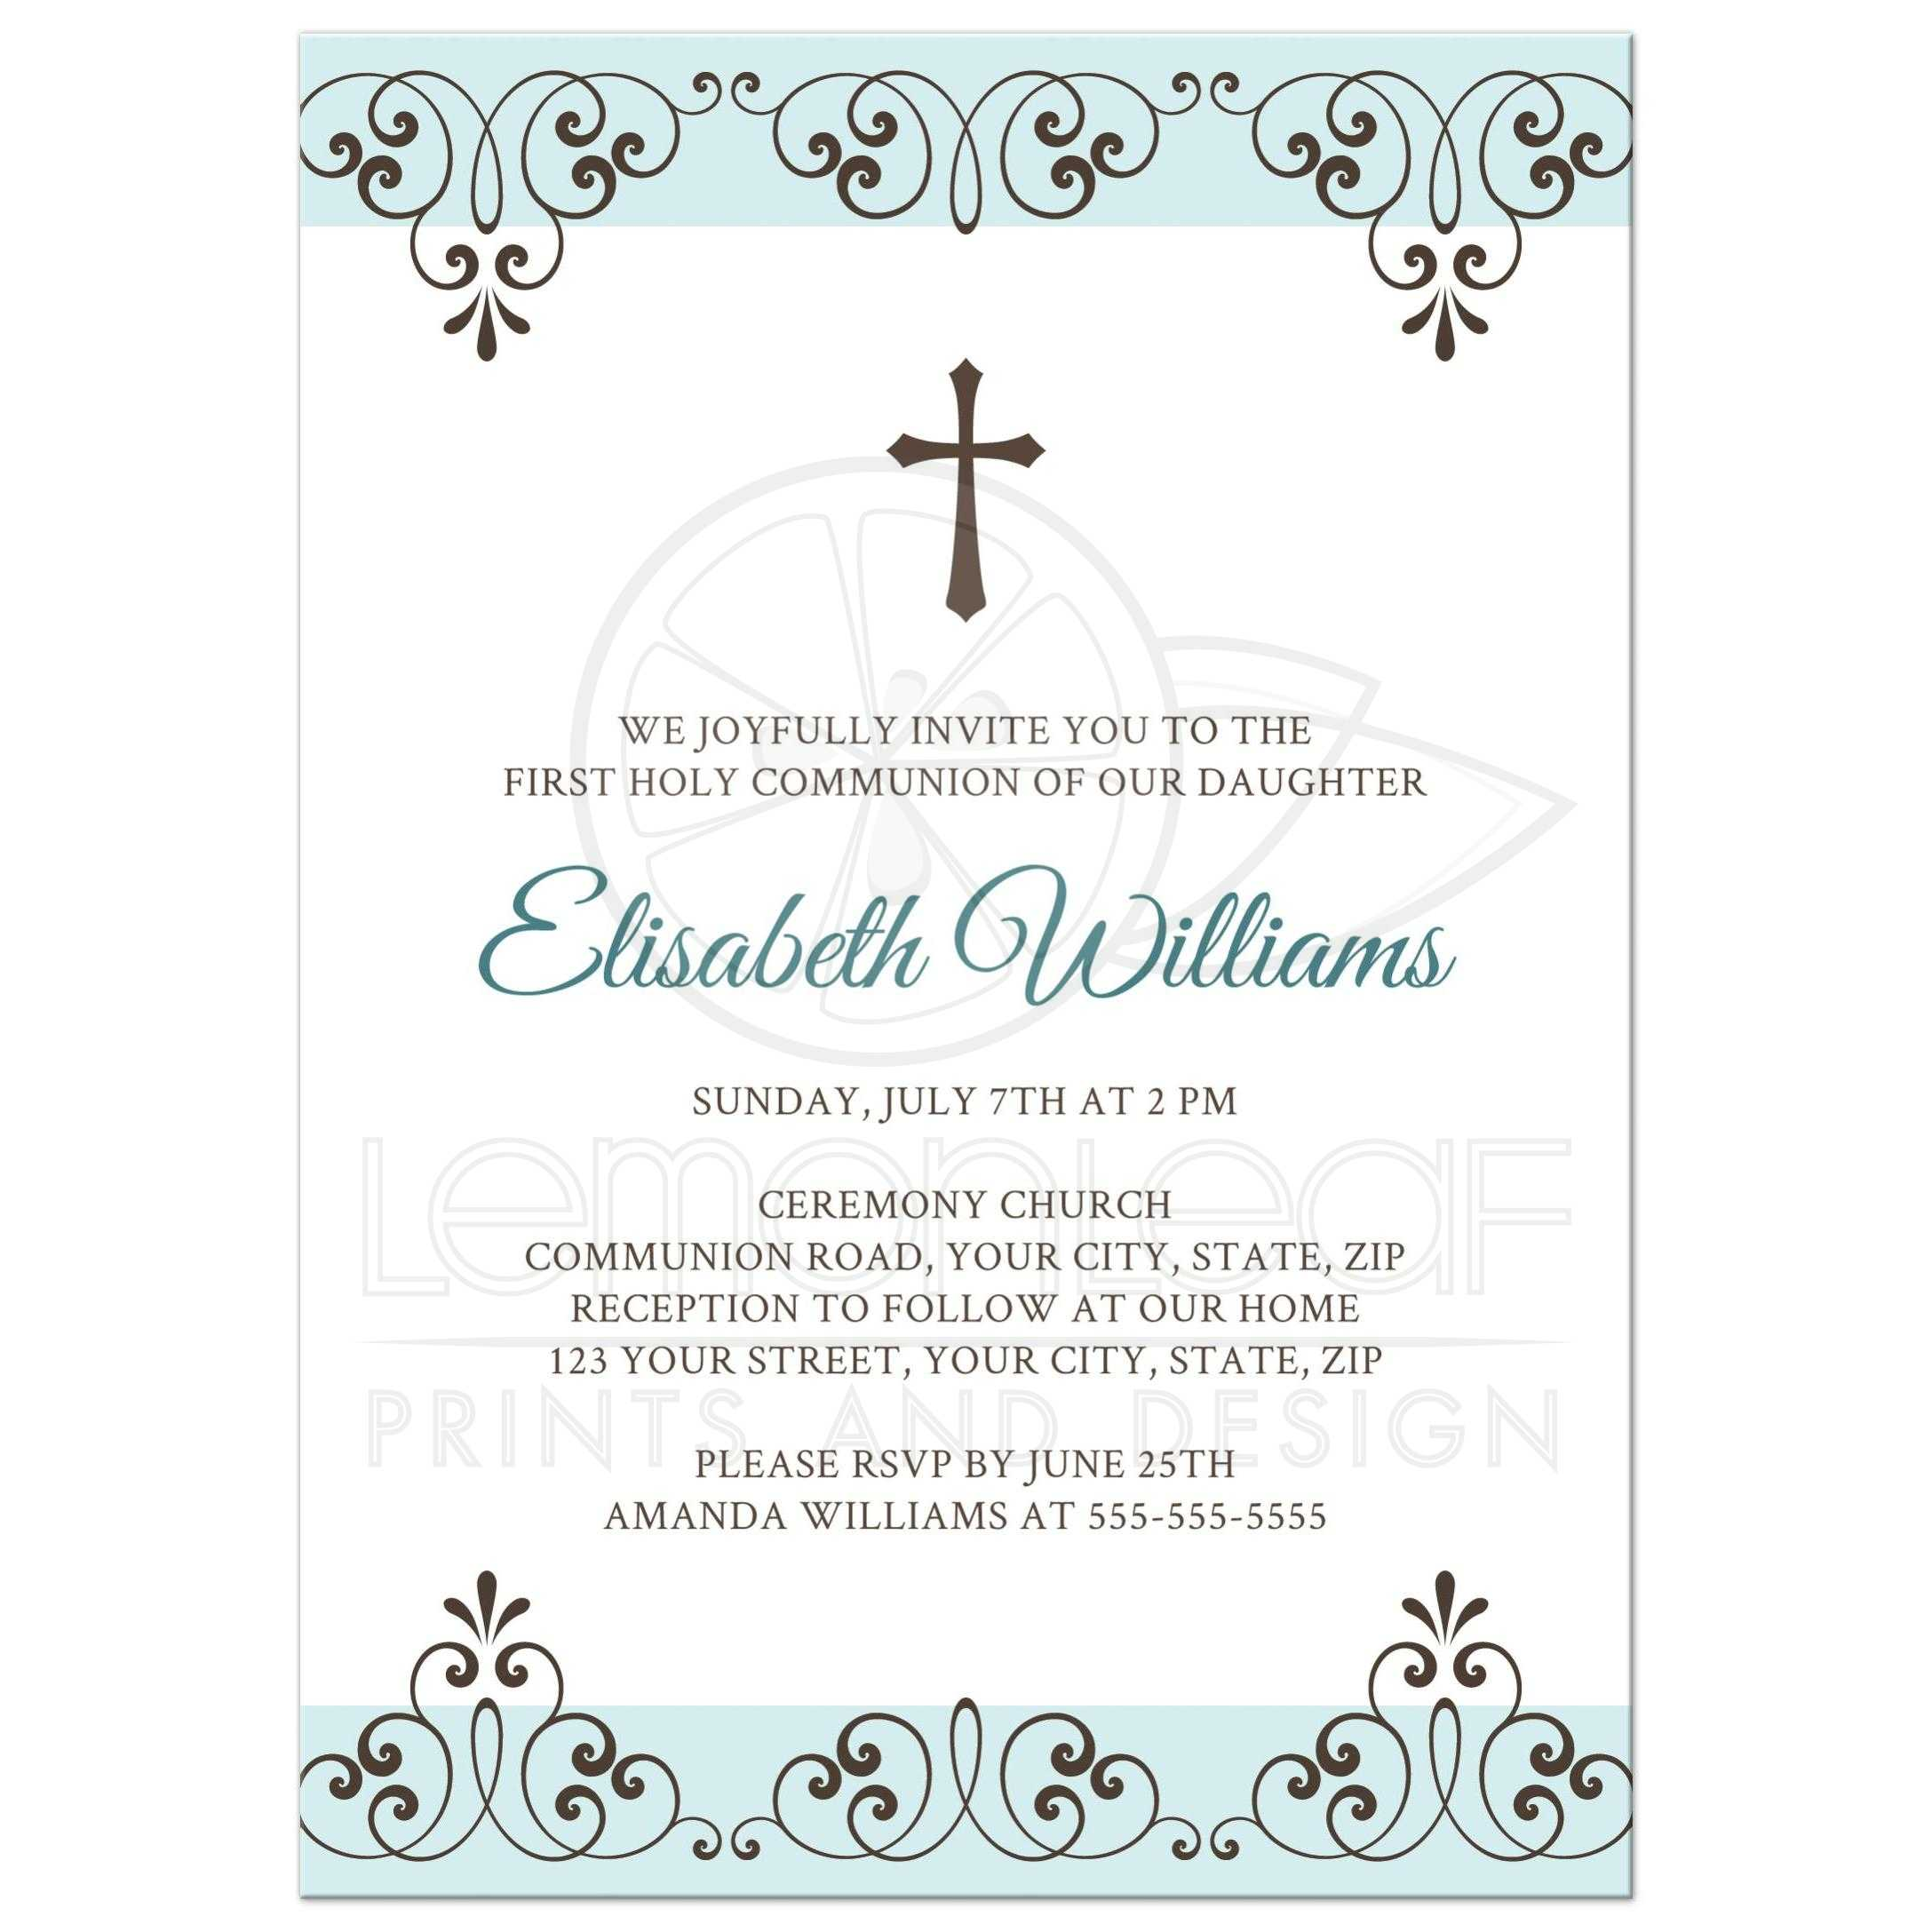 Pale Muted Blue And Brown First Holy Communion Invite With Ornate